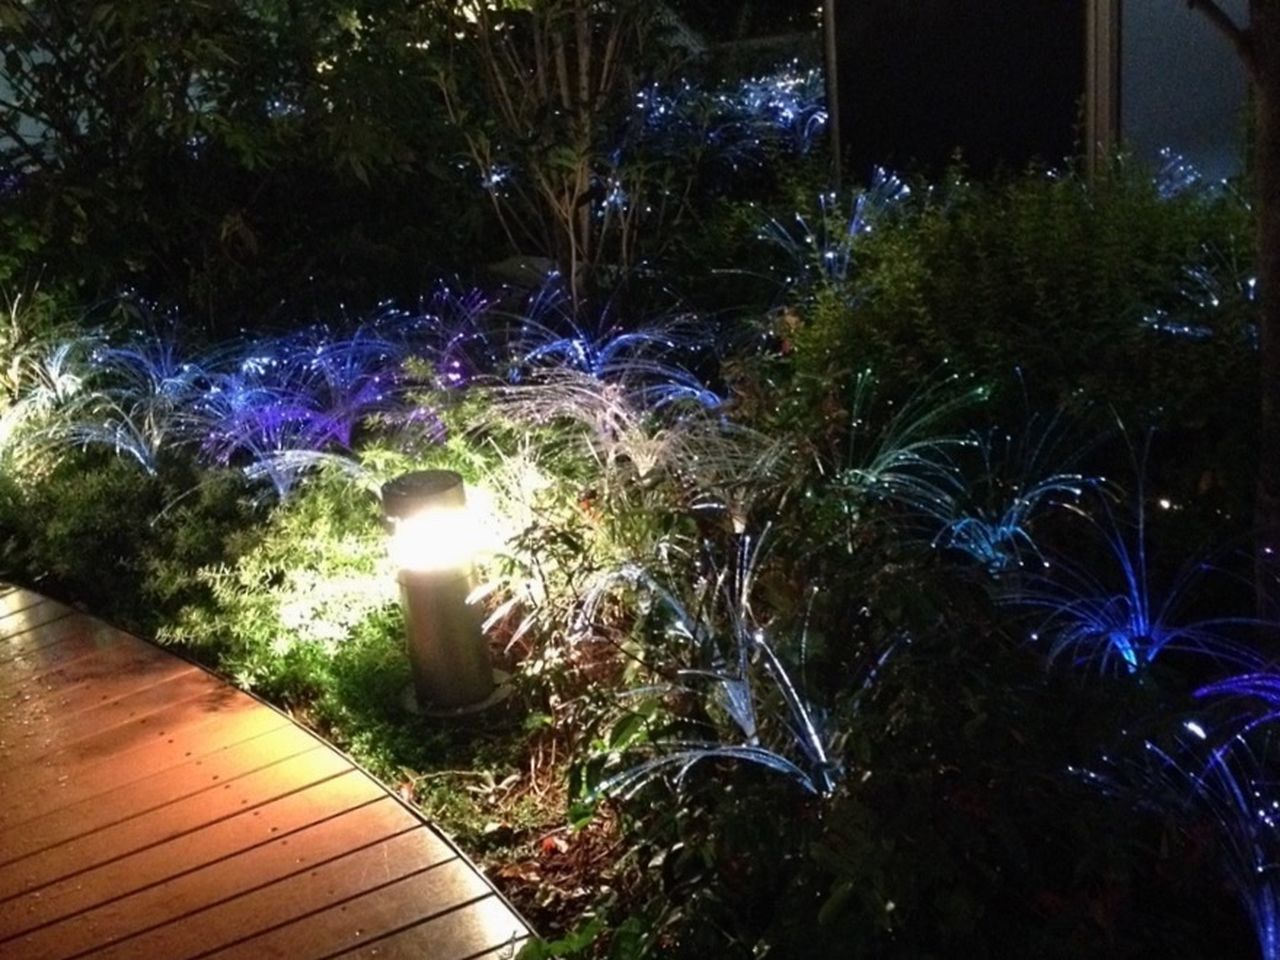 night, illuminated, glowing, no people, plant, celebration, tree, outdoors, nature, grass, close-up